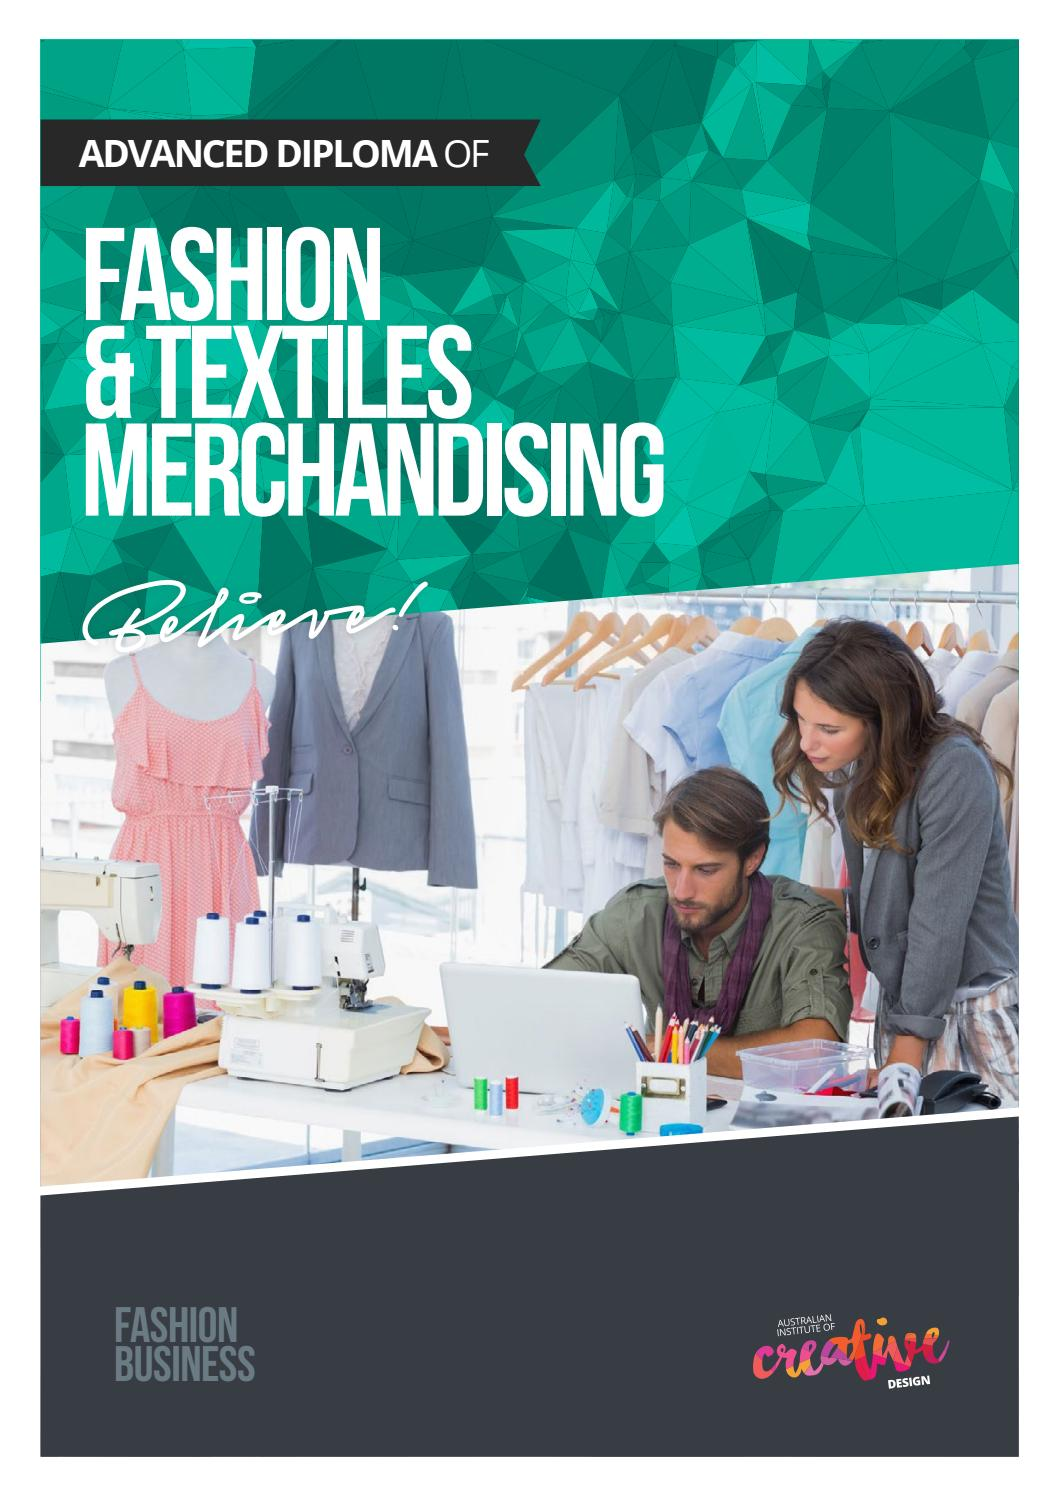 Advanced Diploma Of Fashion Textile Merchandising By Australian Institute Of Creative Design Issuu